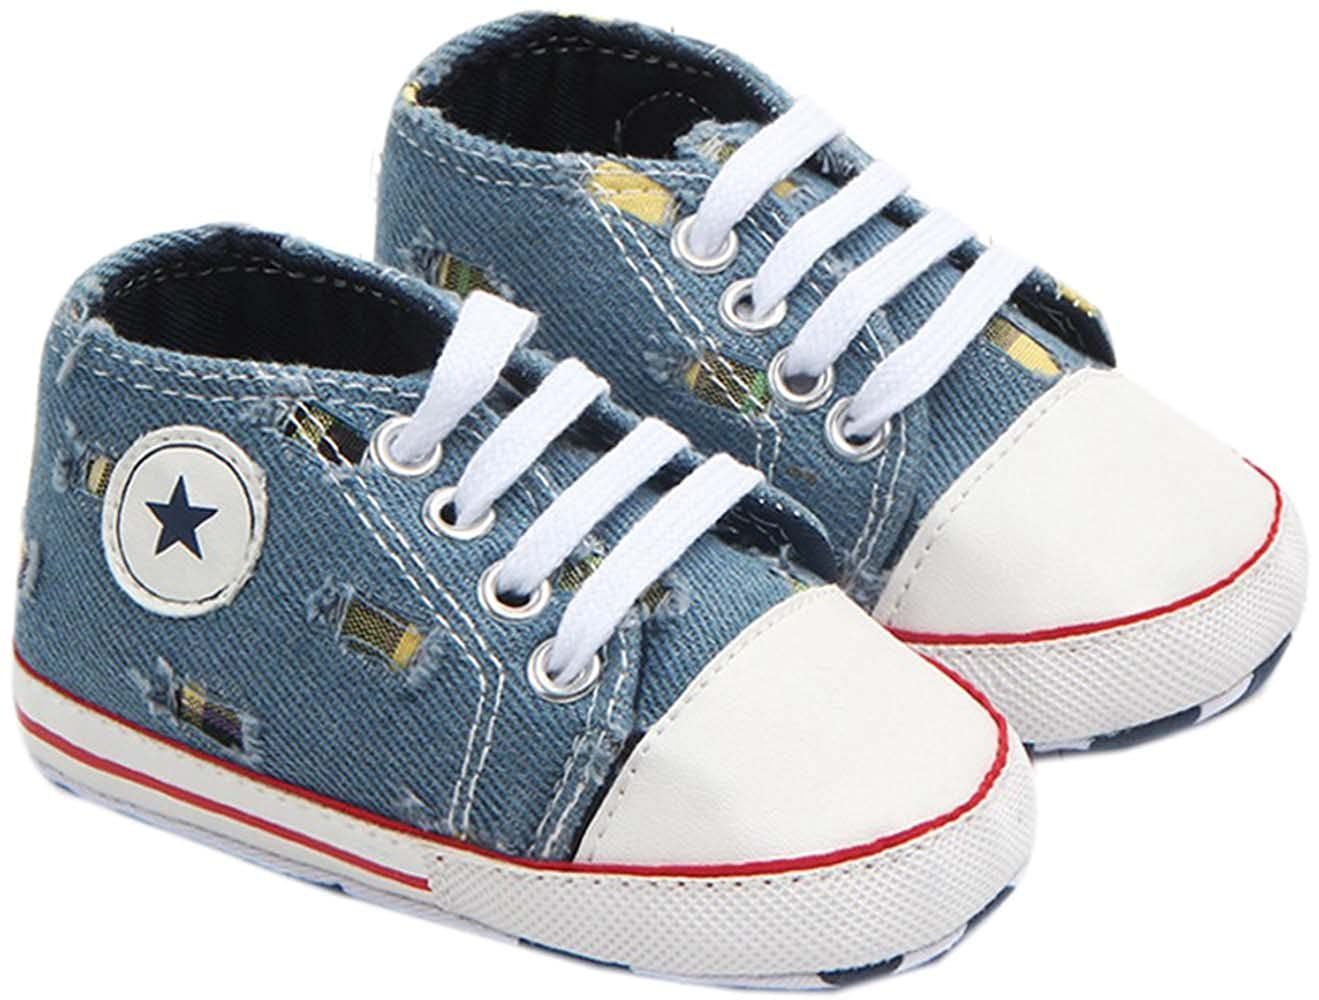 0-1 Year bettyhome Cotton Unisex Baby Newborn Blue Ripped Jeans Canvas Soft Sole Infant Toddler Prewalker Sneakers